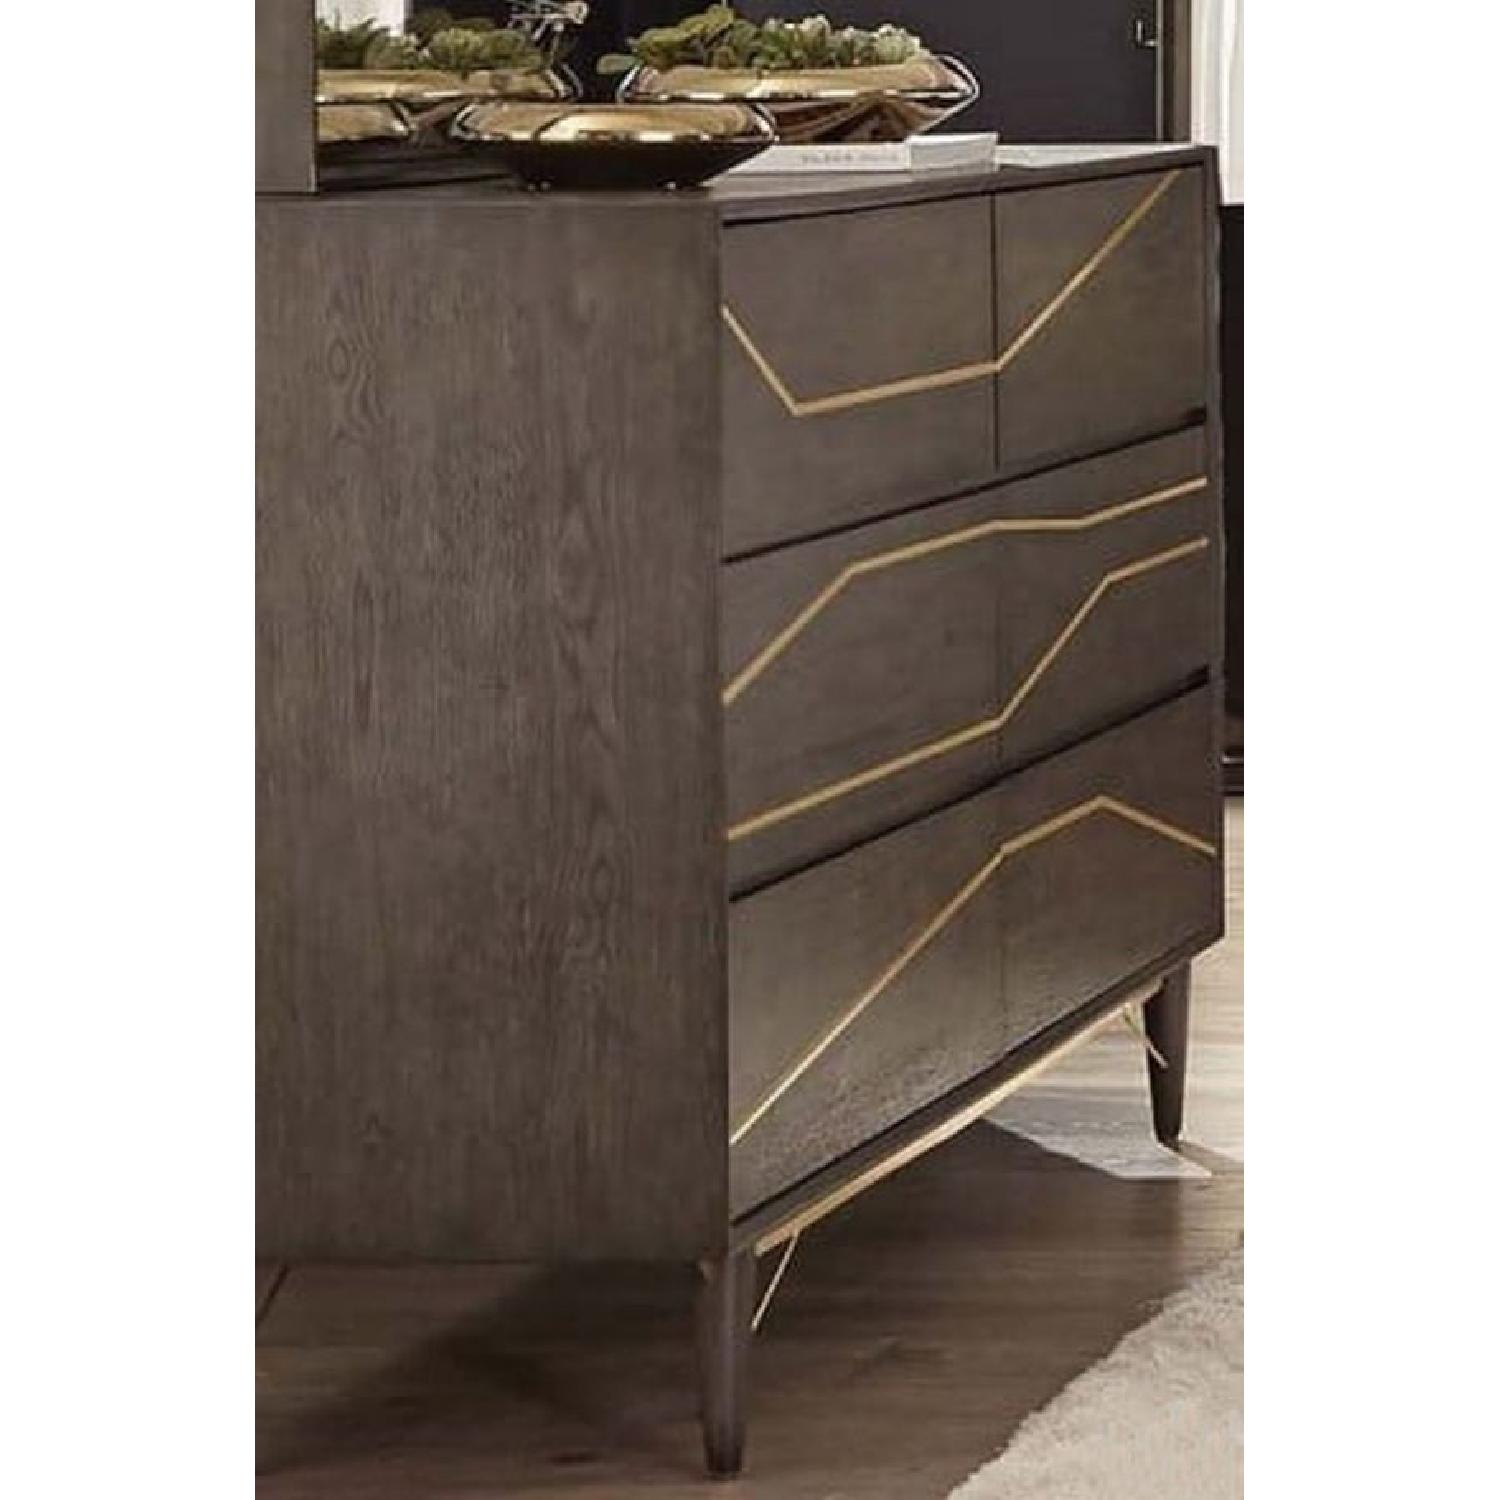 Modern Dresser in Graphite Finish w/ Gold Color Inlay - image-2